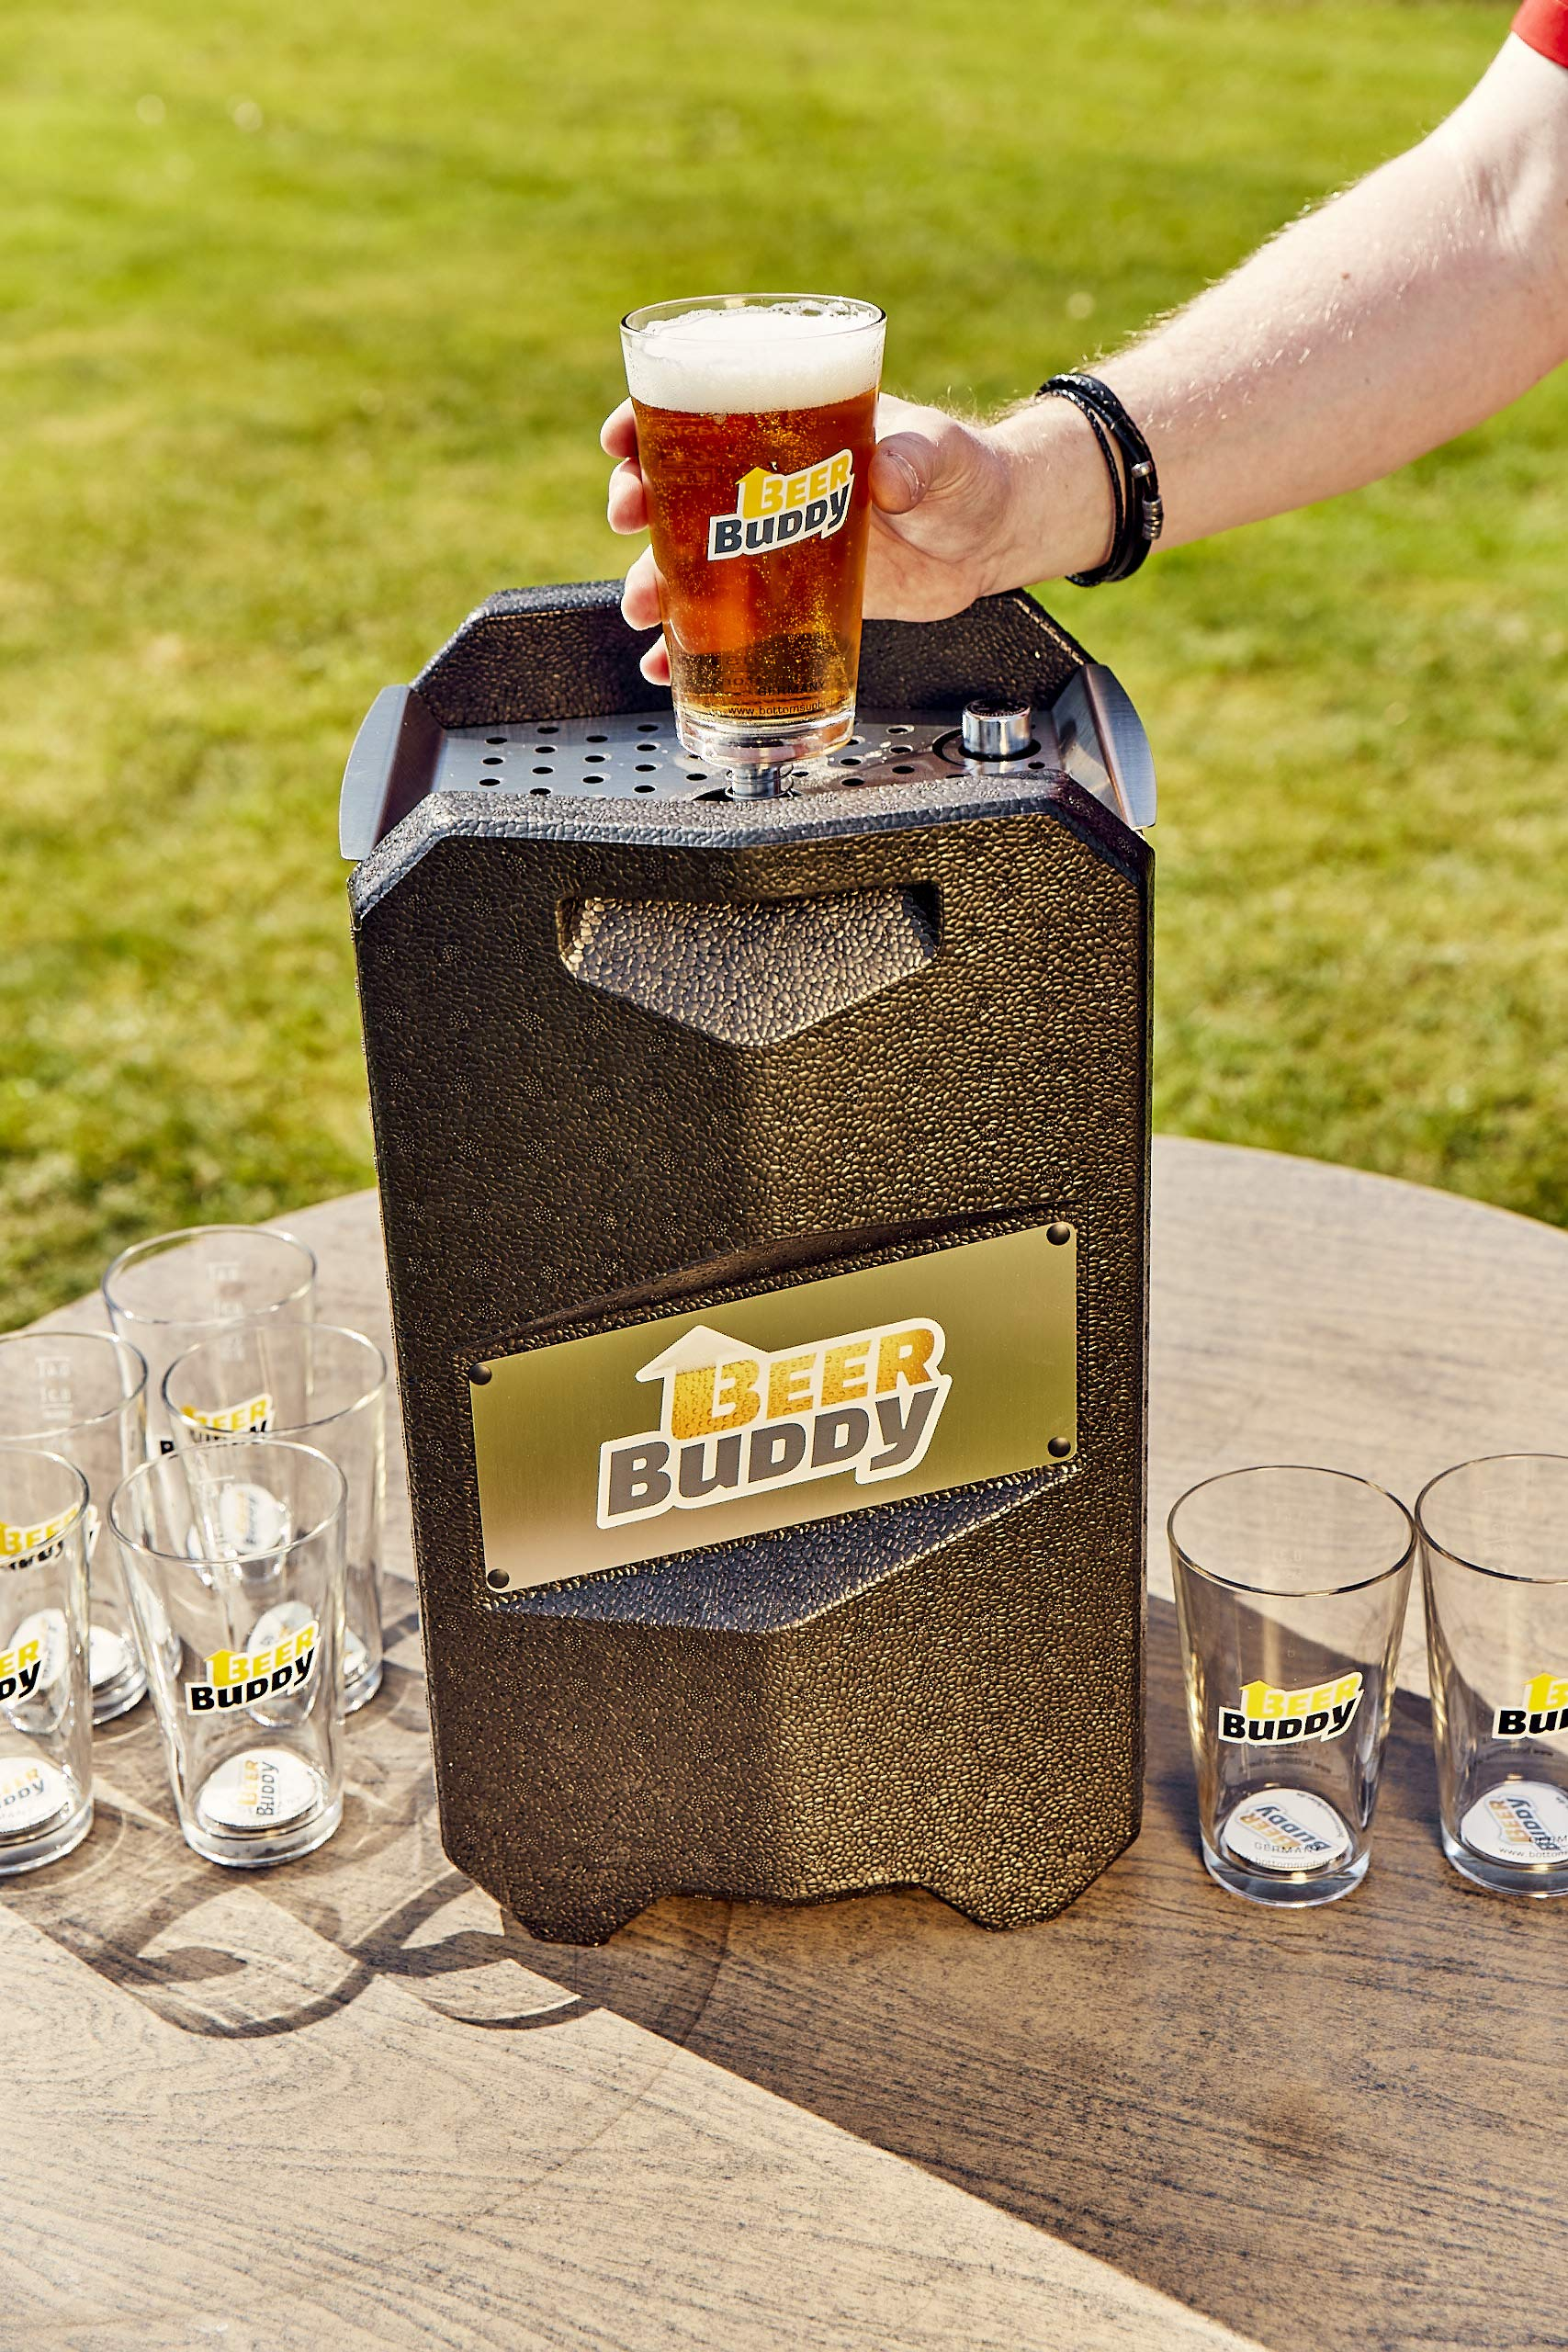 91jBE4aQRPL - Beer Buddy Version 2.0 latest version. Bottoms Up Beer Tap for 5 Litre Party Barrels